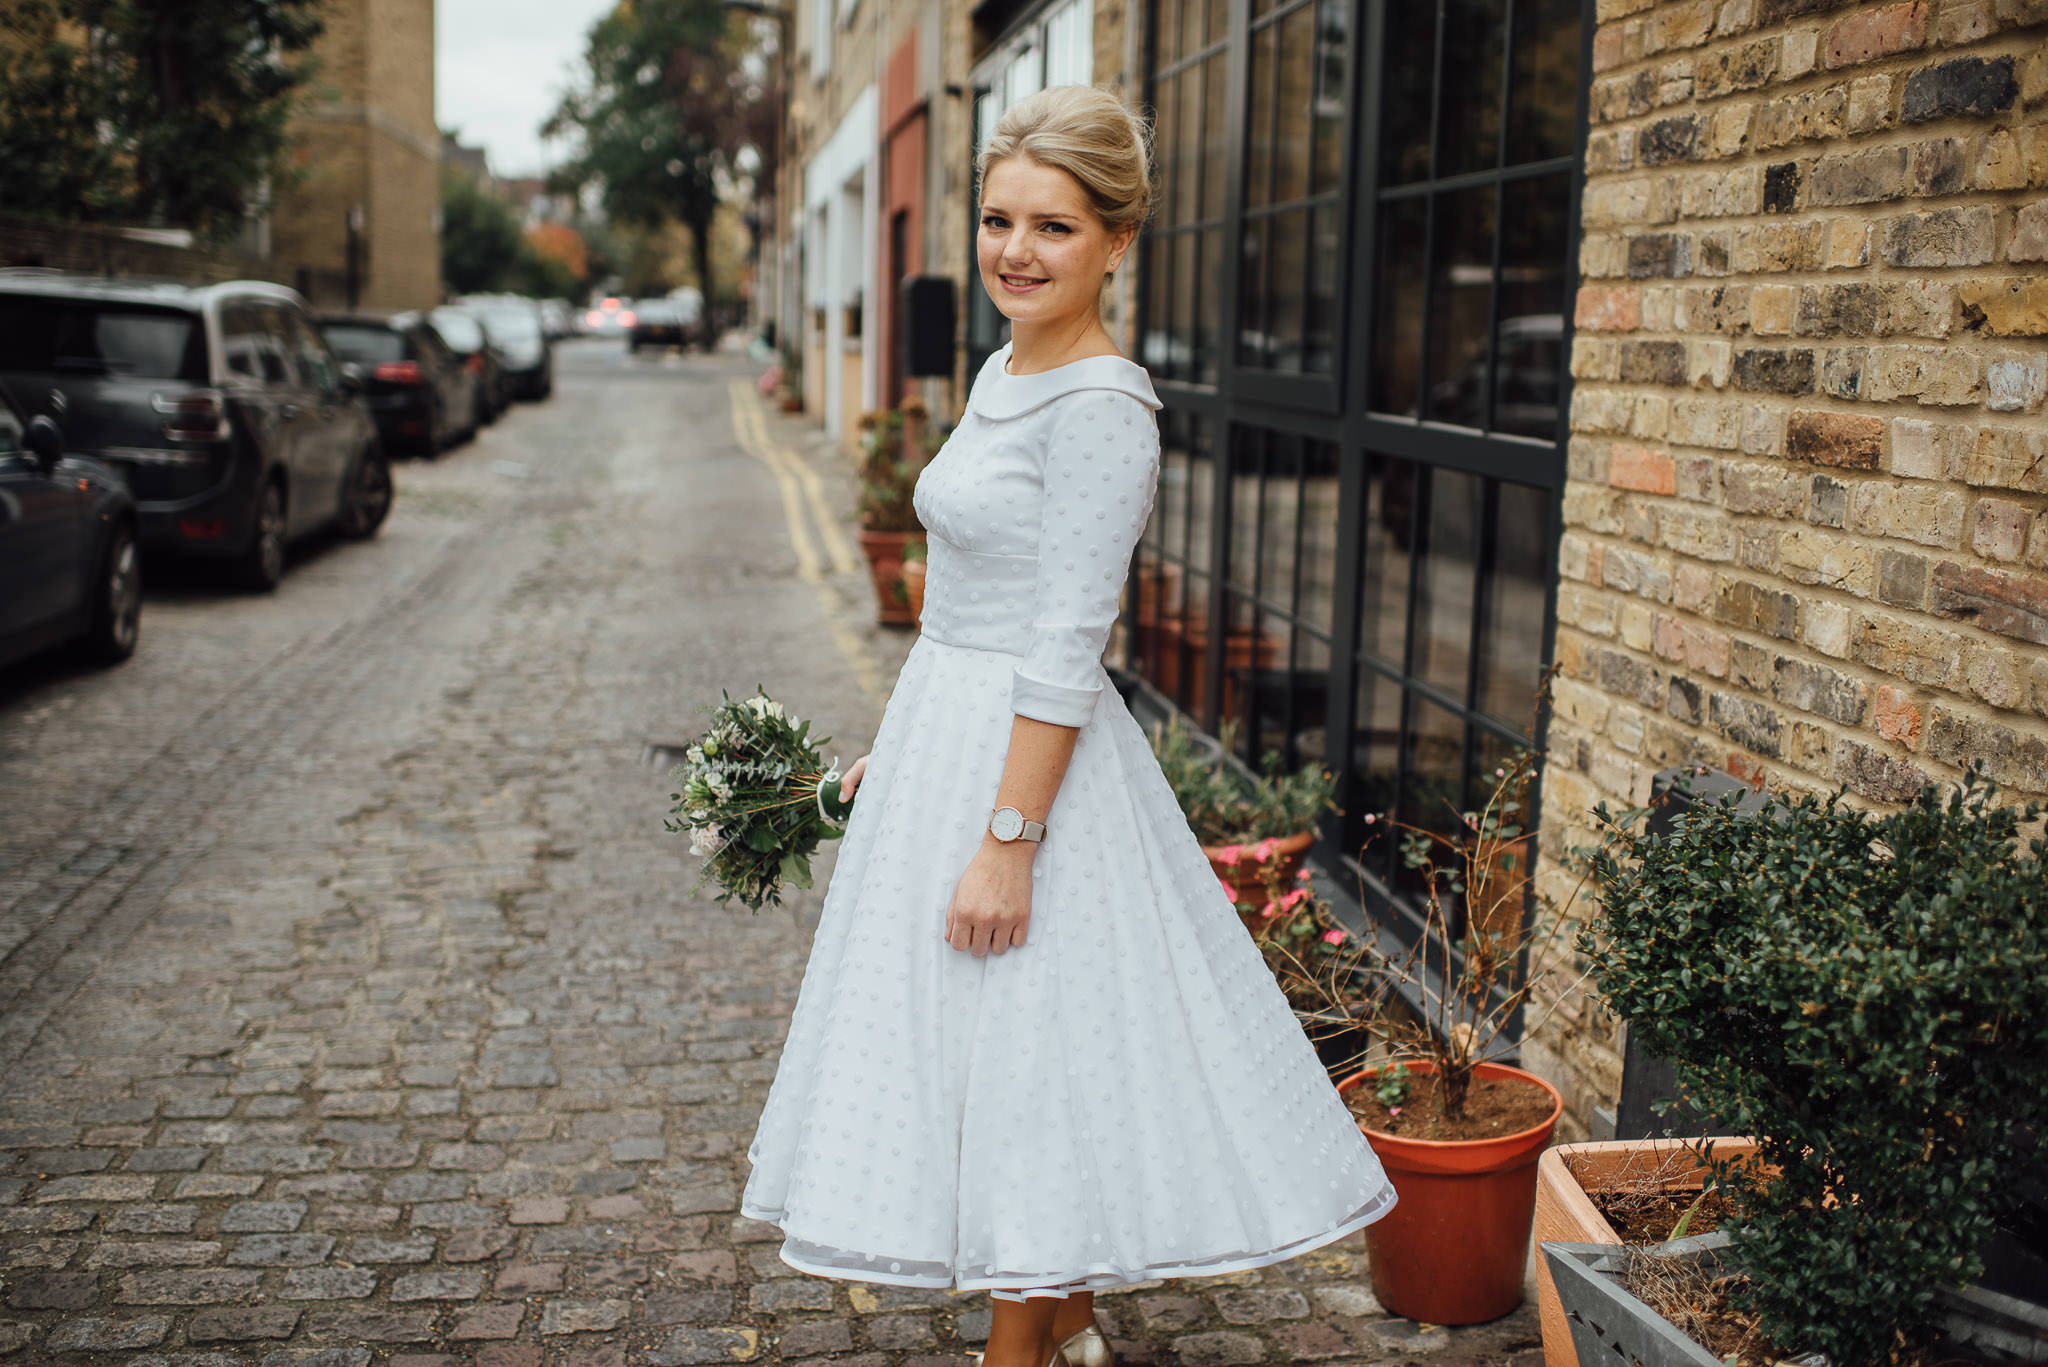 Vintage wedding dress in stoke newington town hall wedding by creative and alternative london wedding photographer the shannons photography